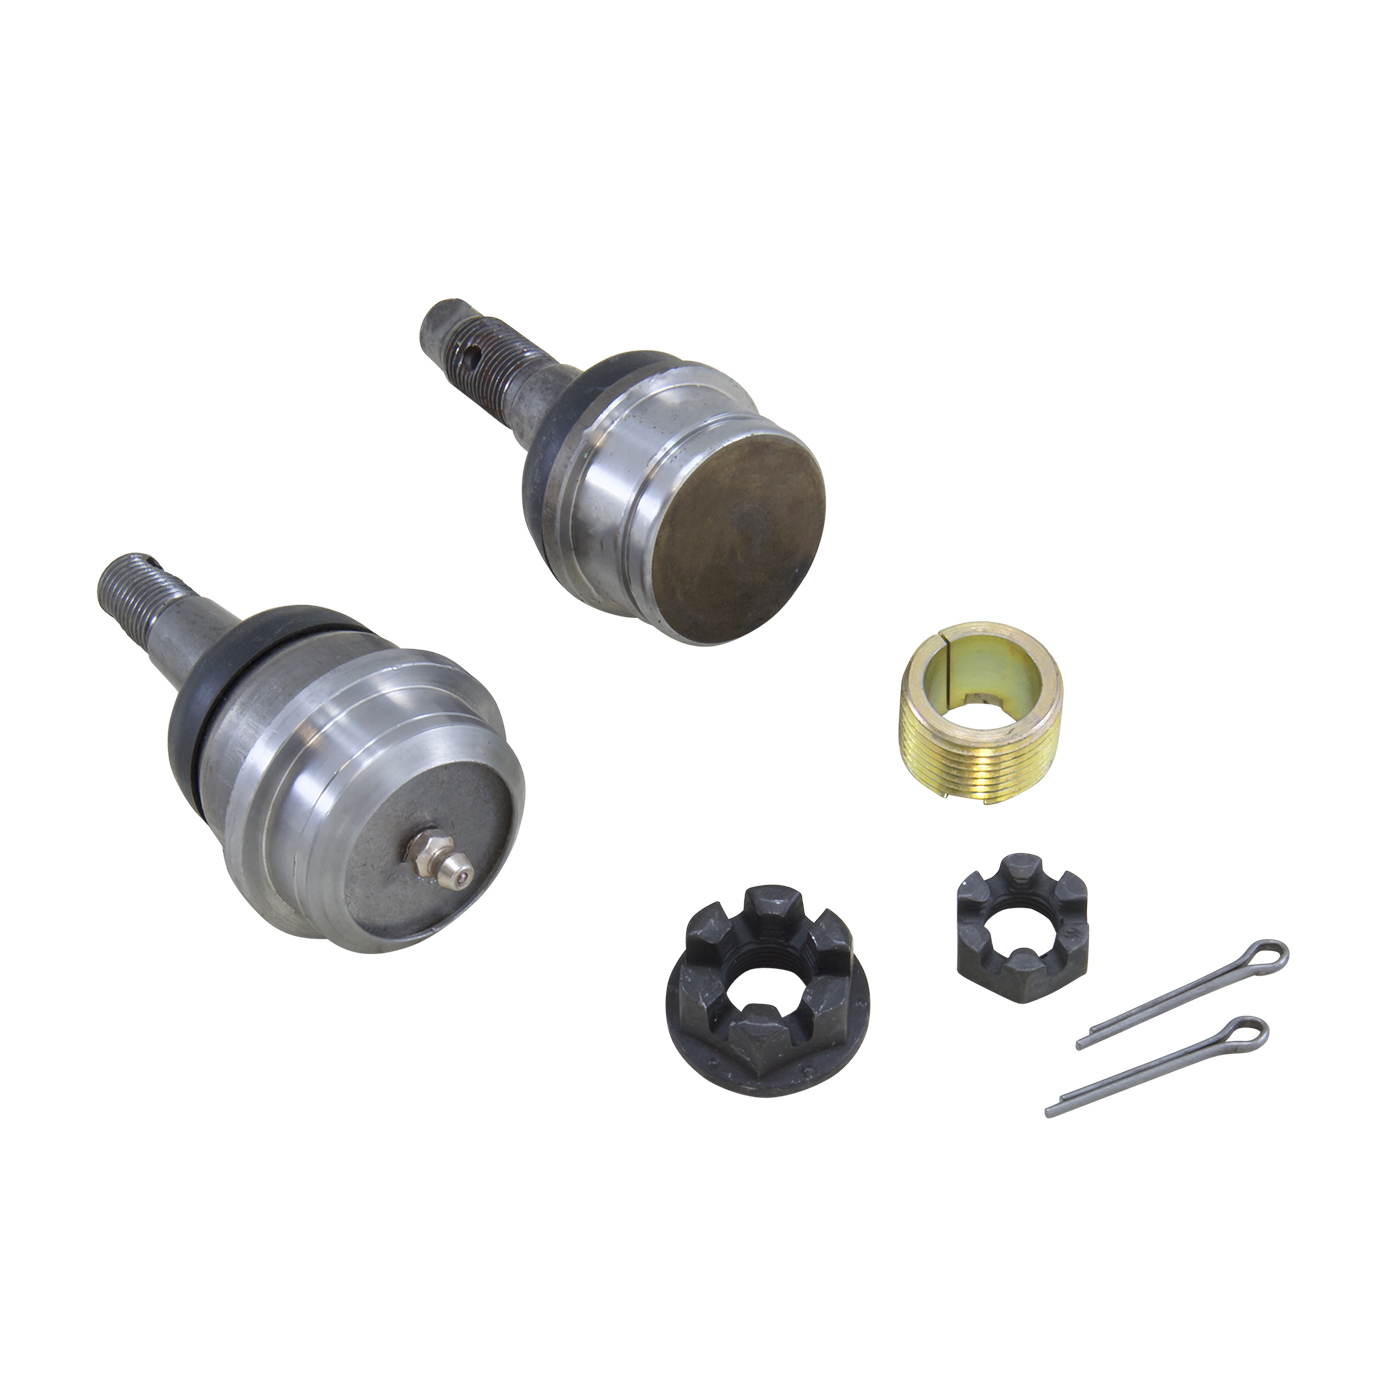 YSPBJ-016 - Ball Joint kit for '00 & Up Dodge Dana 60, one side